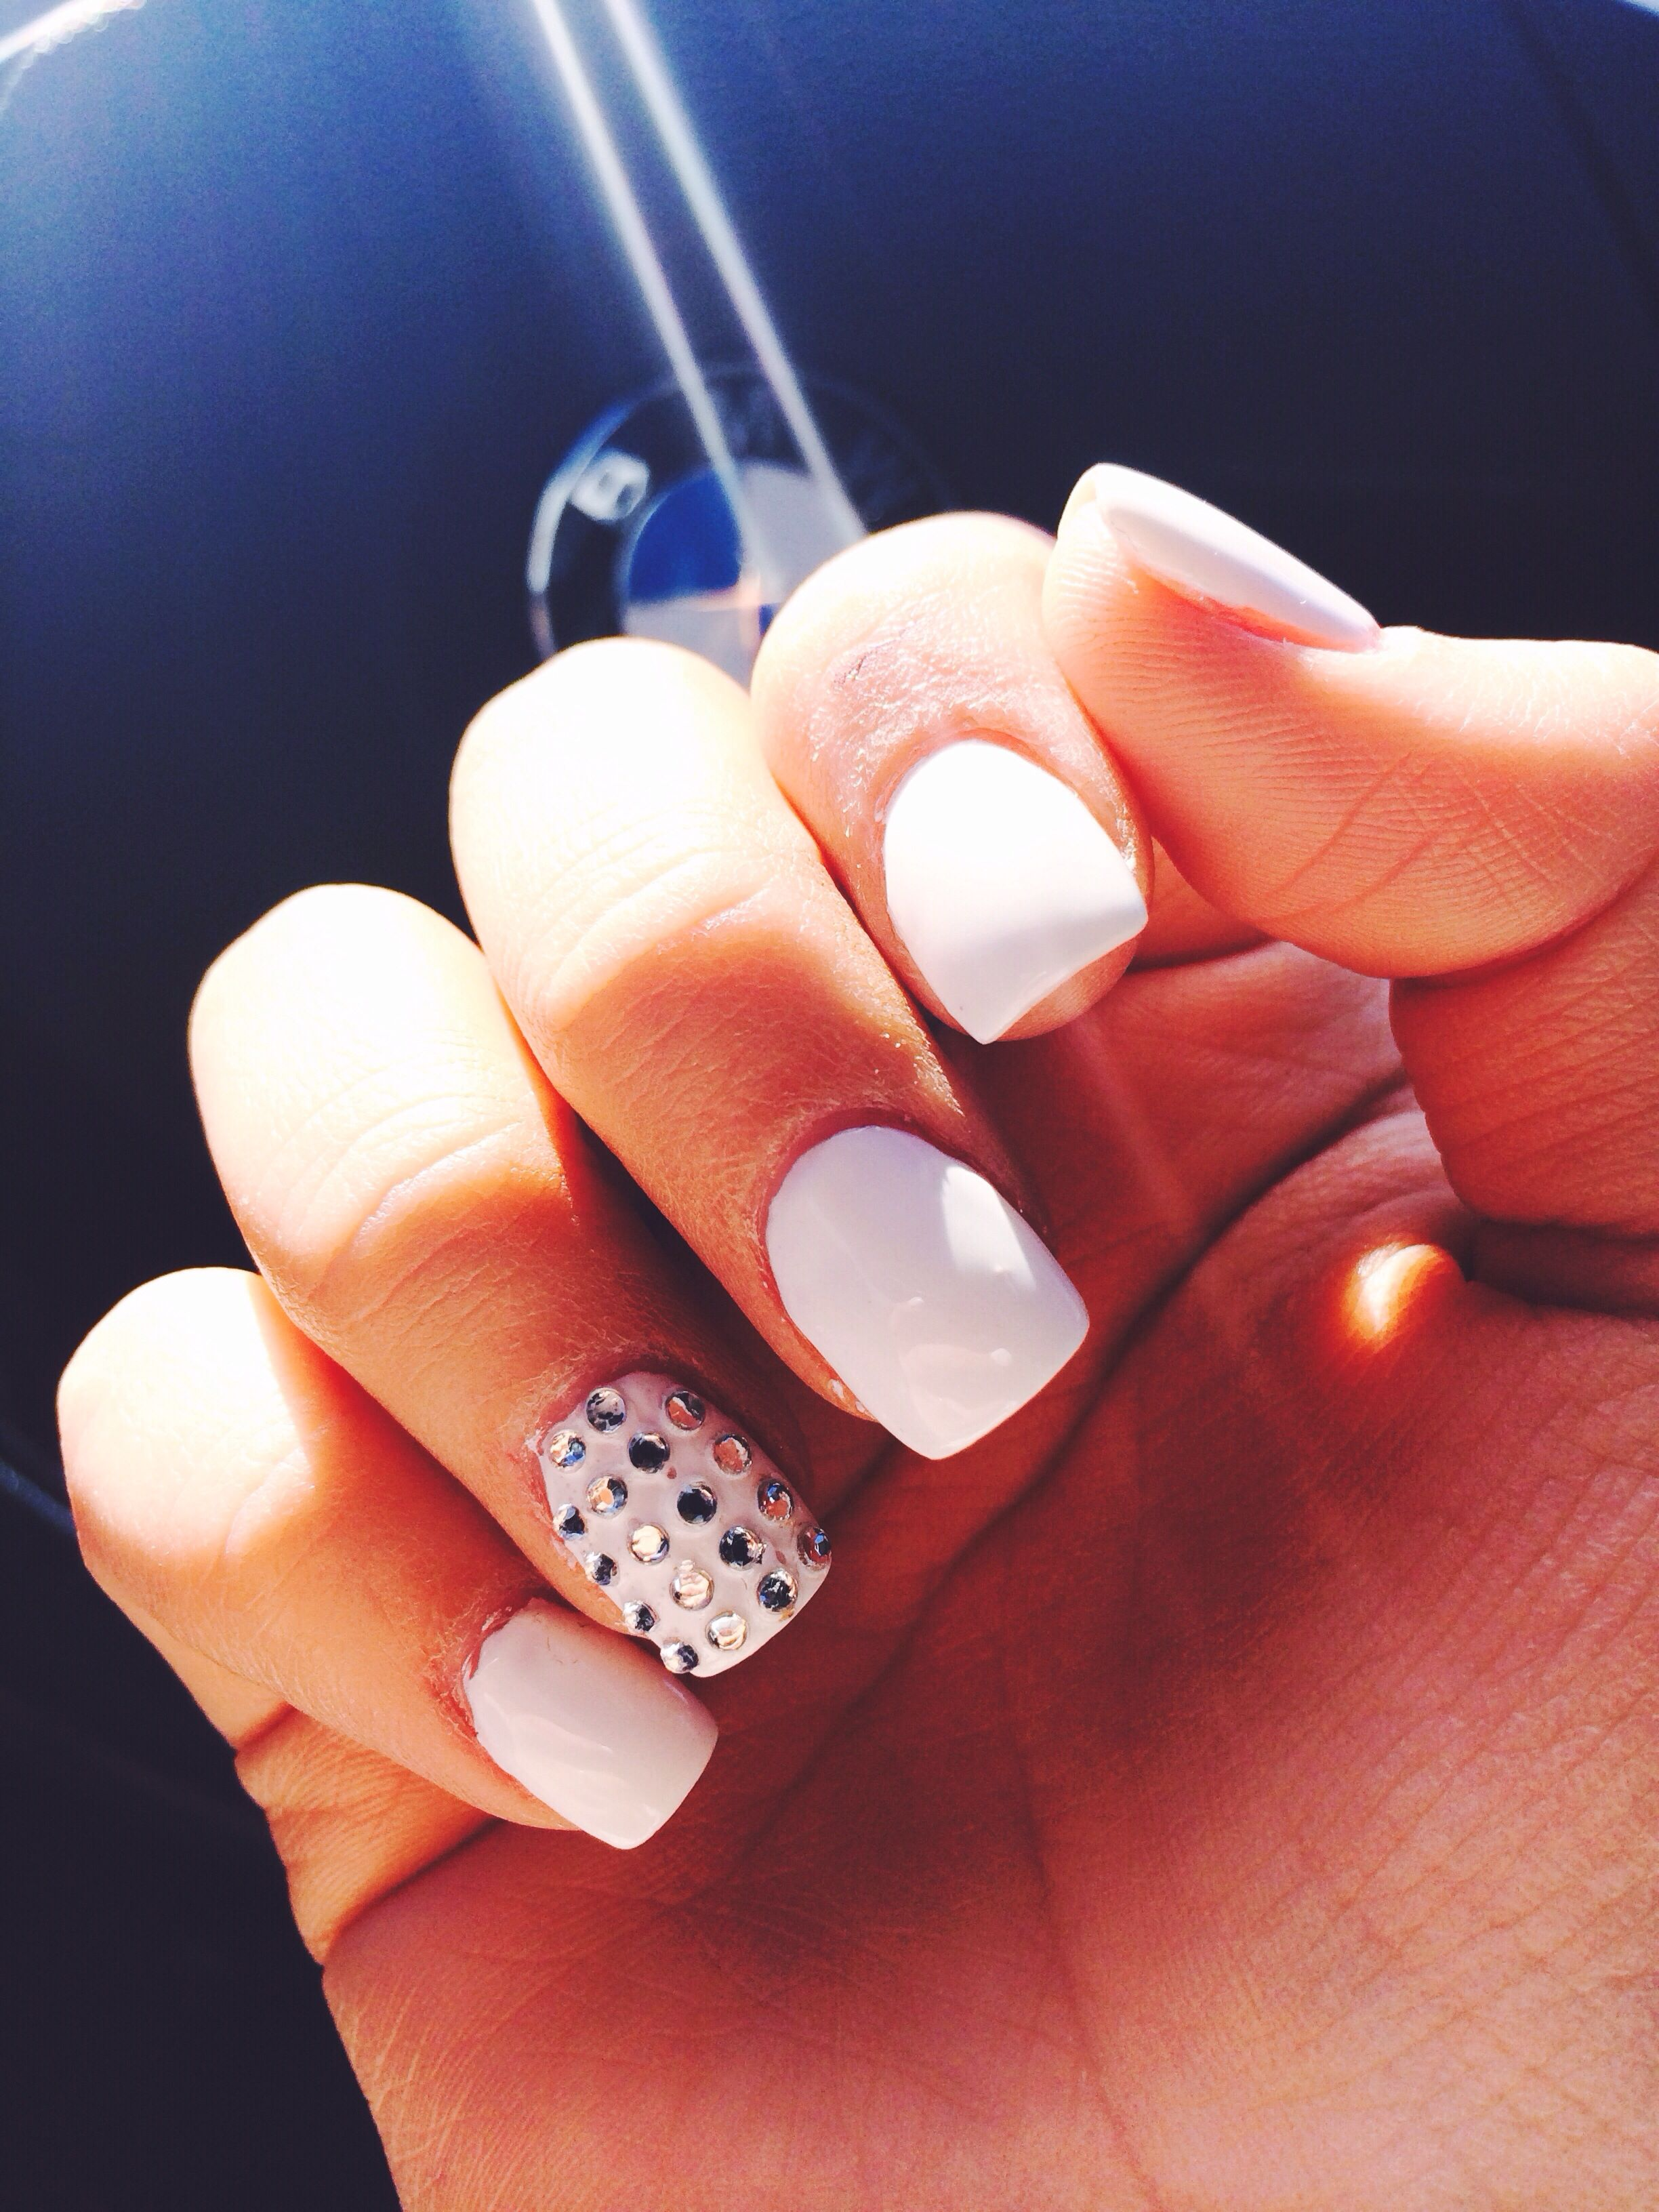 white fake nails | Nails ideas | Pinterest | Makeup, Hair makeup and ...